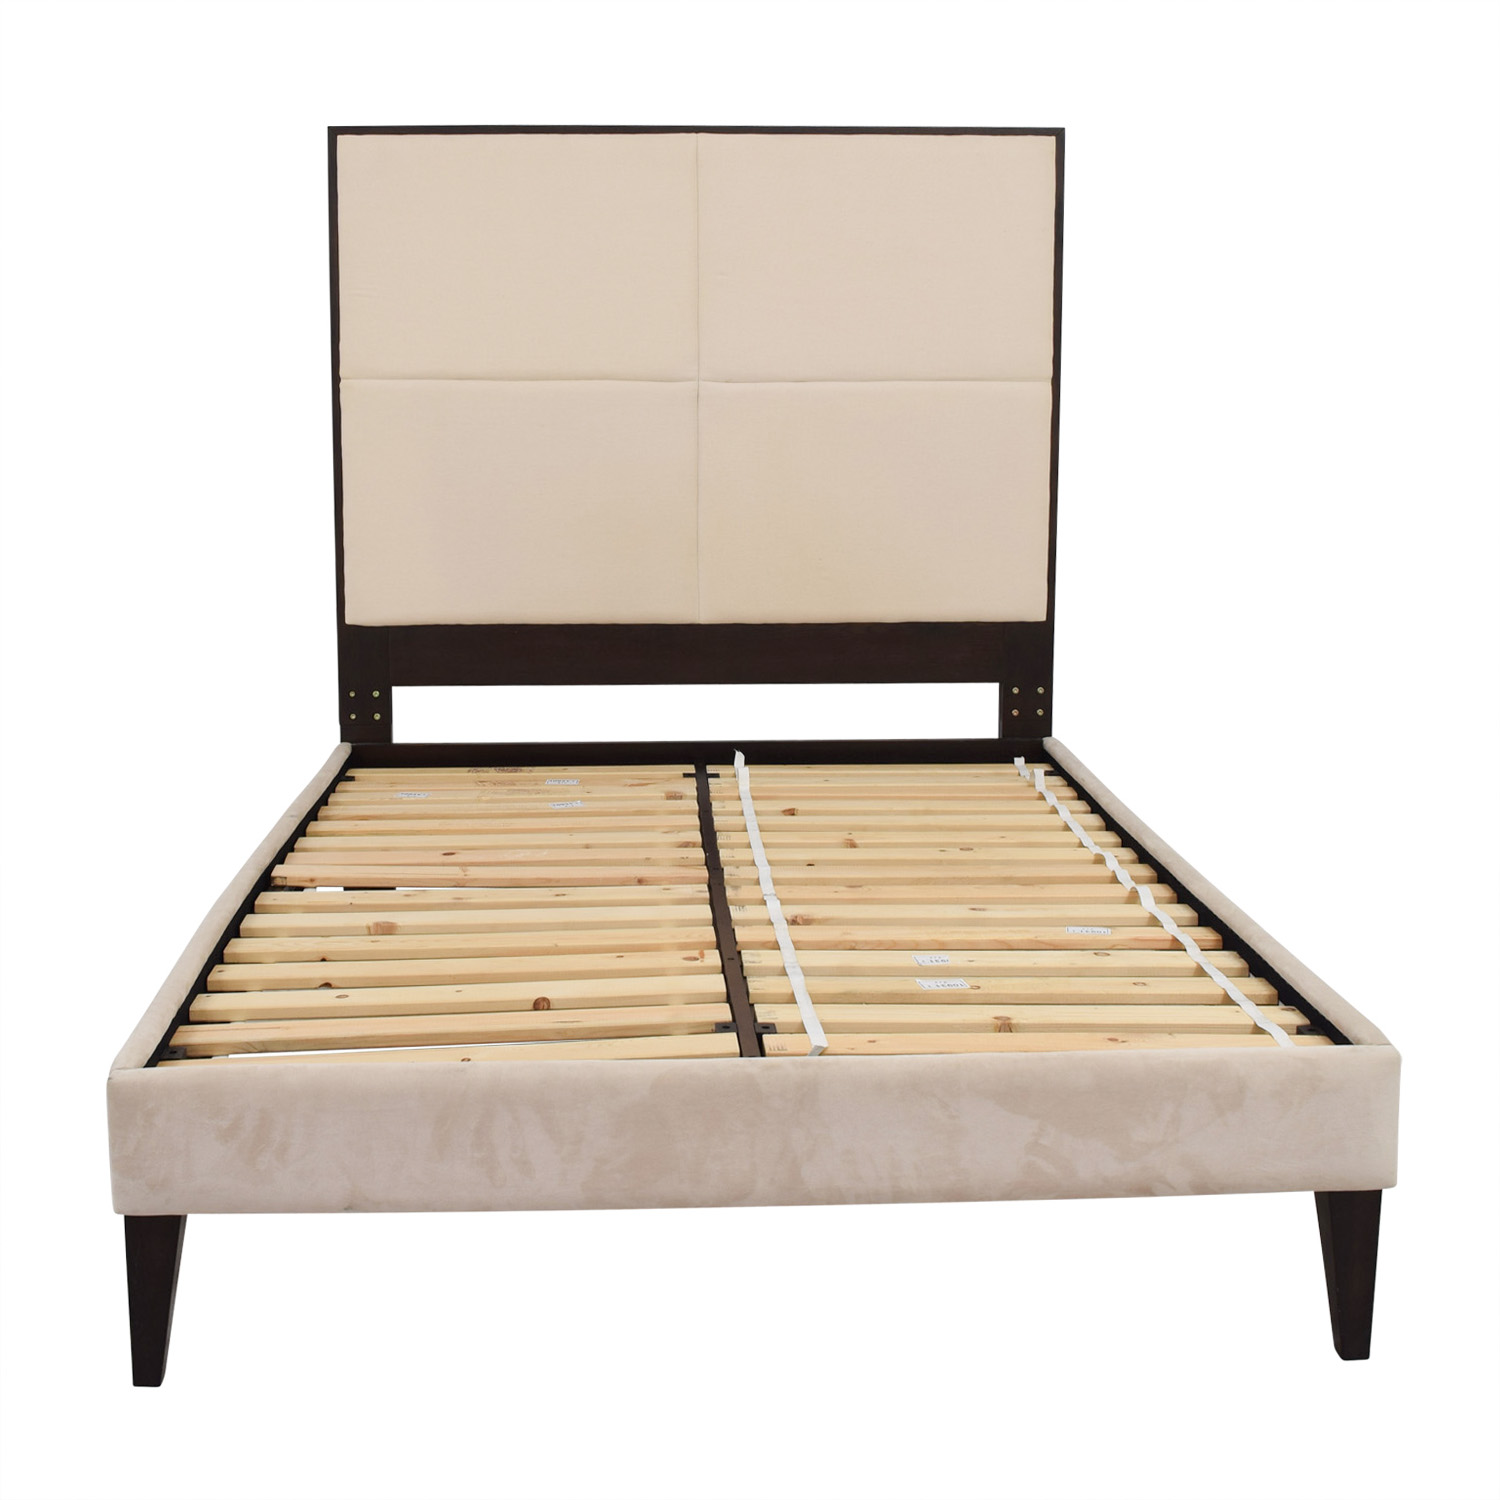 West Elm West Elm Beige Platform Full Bed Frame